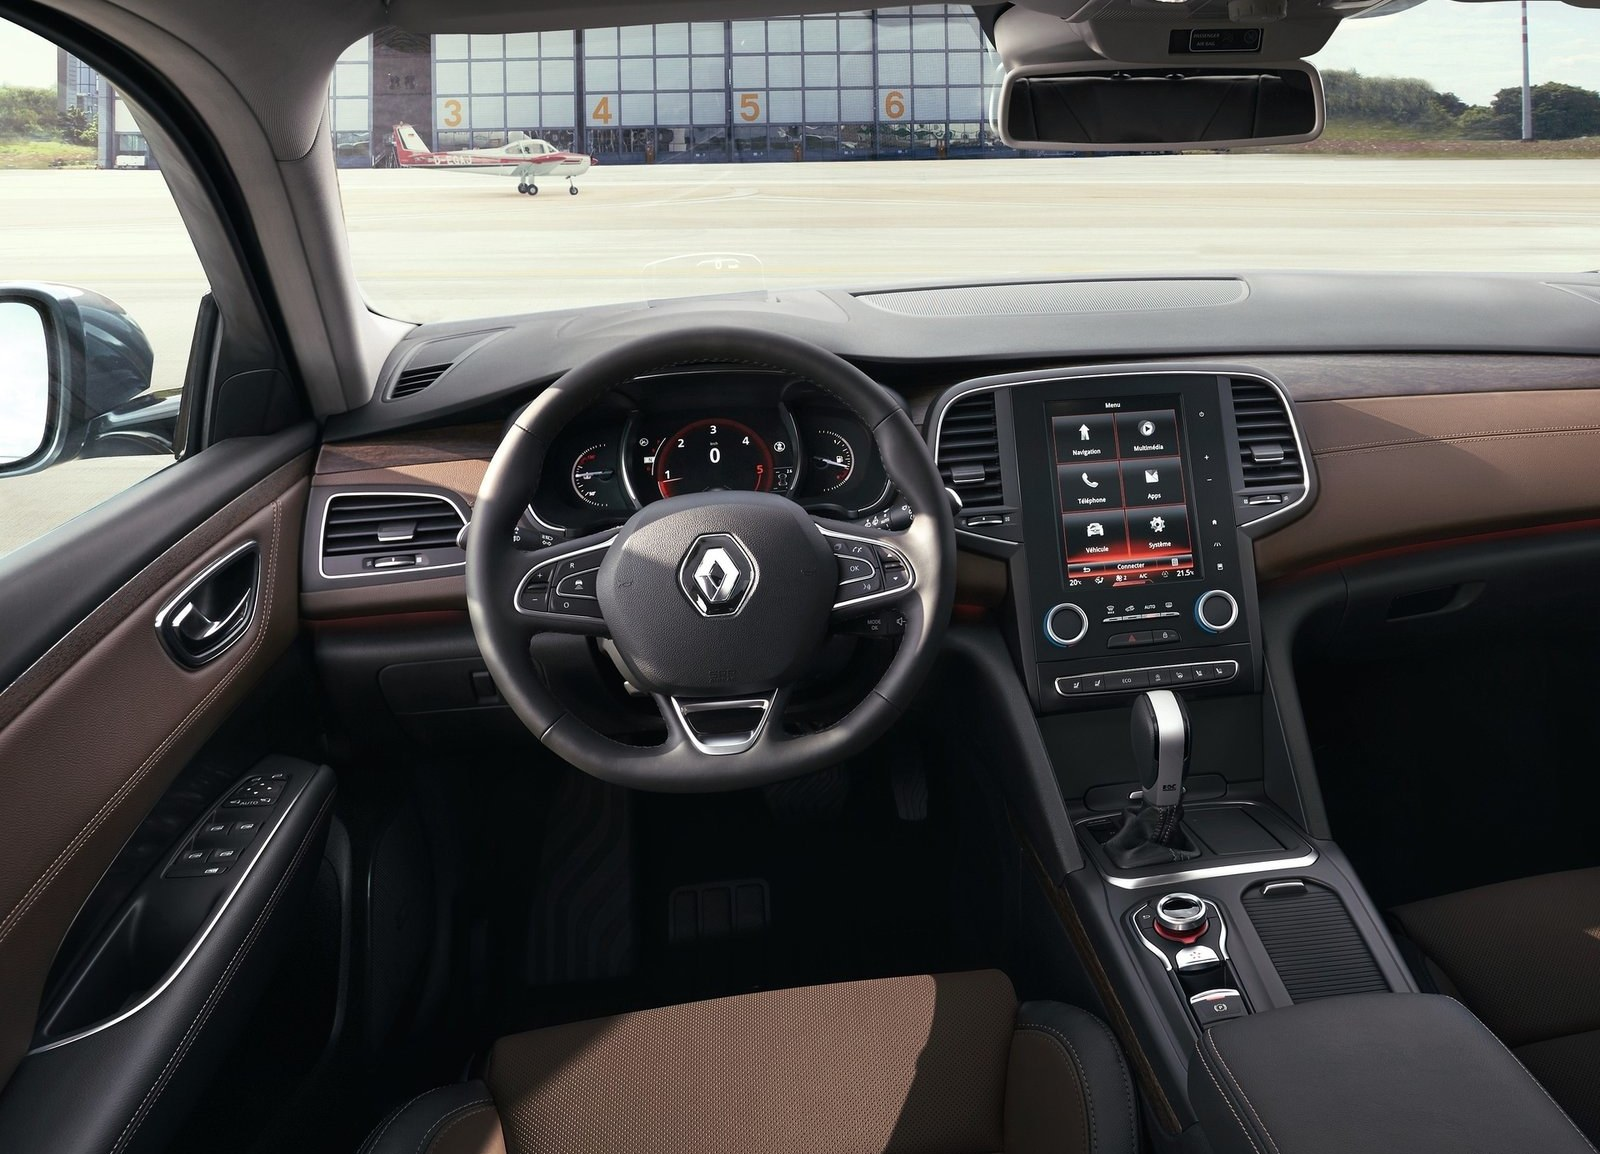 2016 Renault Talisman Cockpit Interior (Photo 2 of 14)